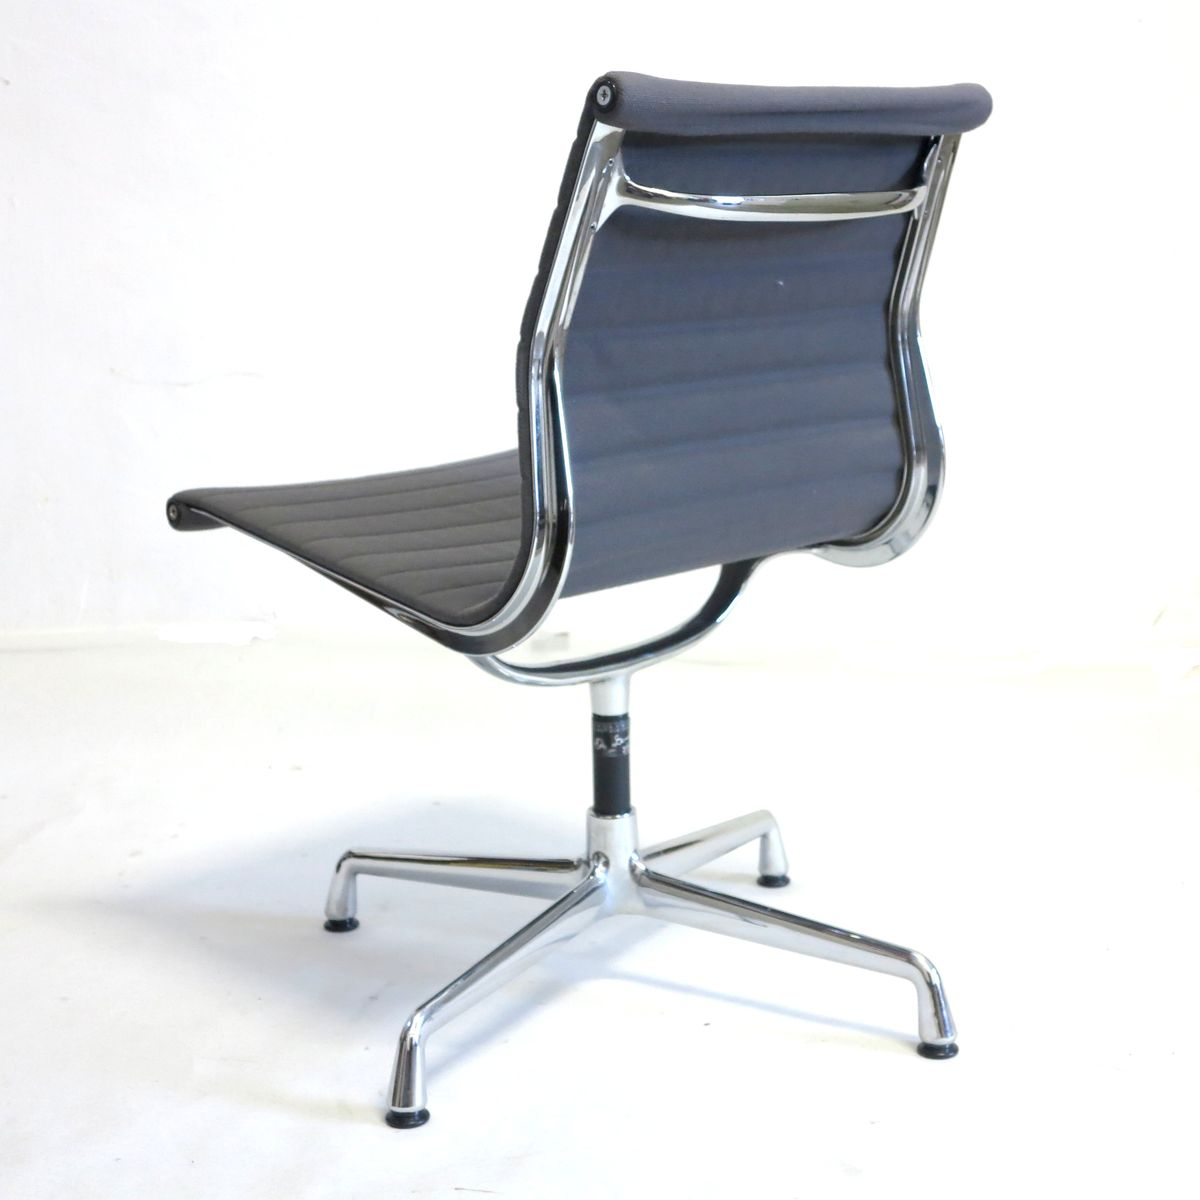 vintage swivel chair by charles ray eames for vitra for sale at